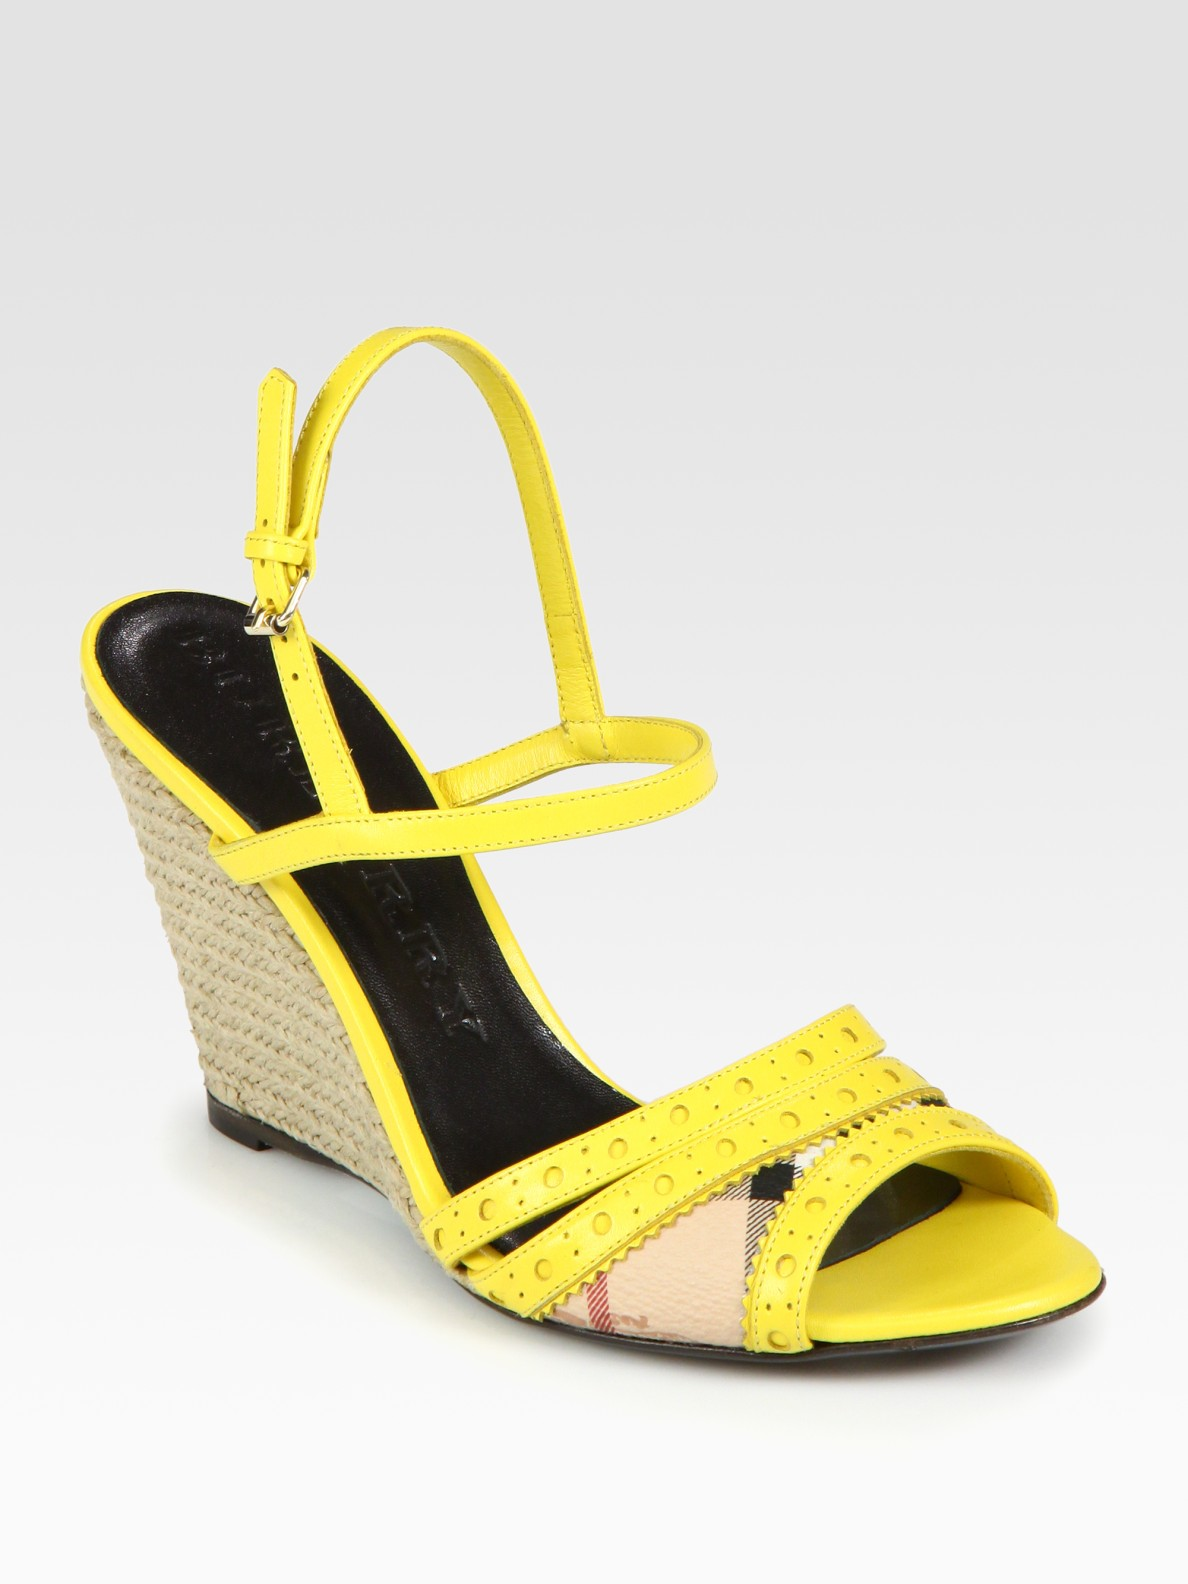 burberry leather slingback espadrille wedge sandals in